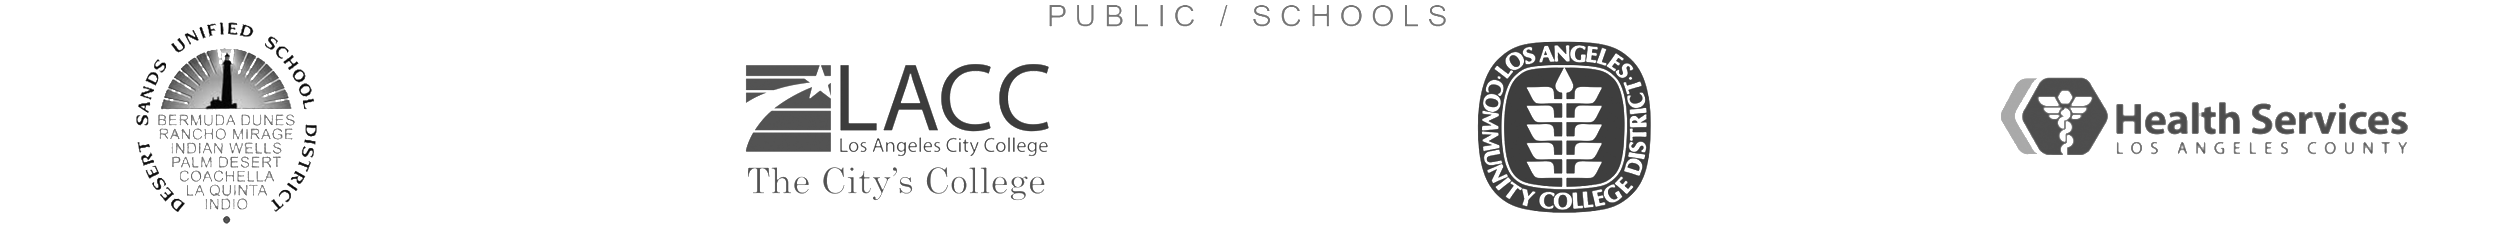 Public / Schools: Desert Sands Unified School District, Los Angeles City College, Los Angeles Community College District, and Los Angeles County Department of Health Services Logos